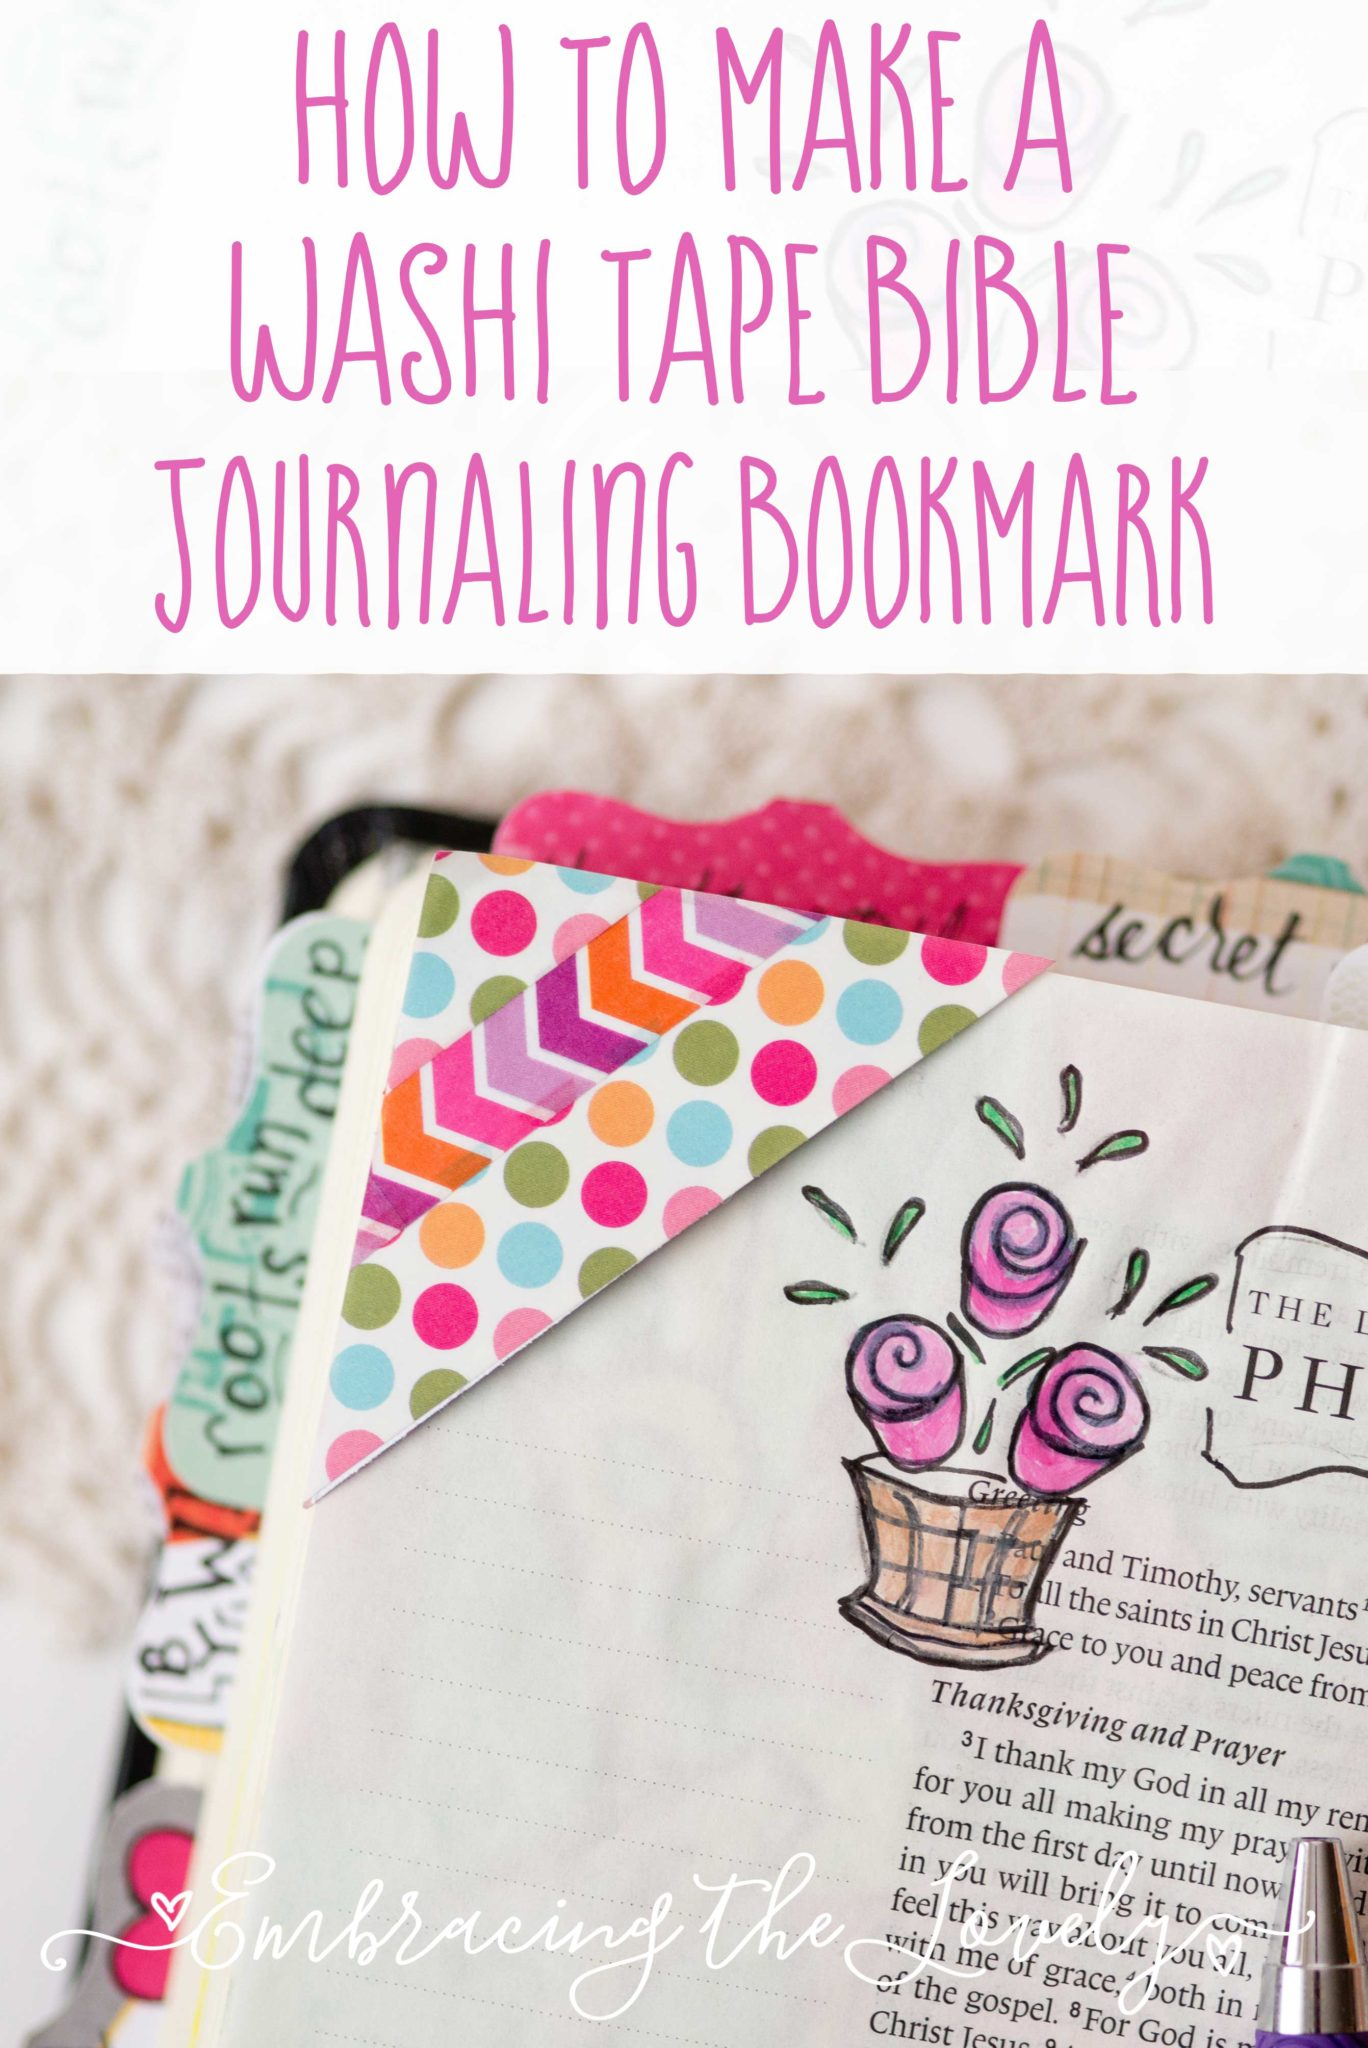 Make a Quick and Easy Washi Tape Bible Journaling Bookmark